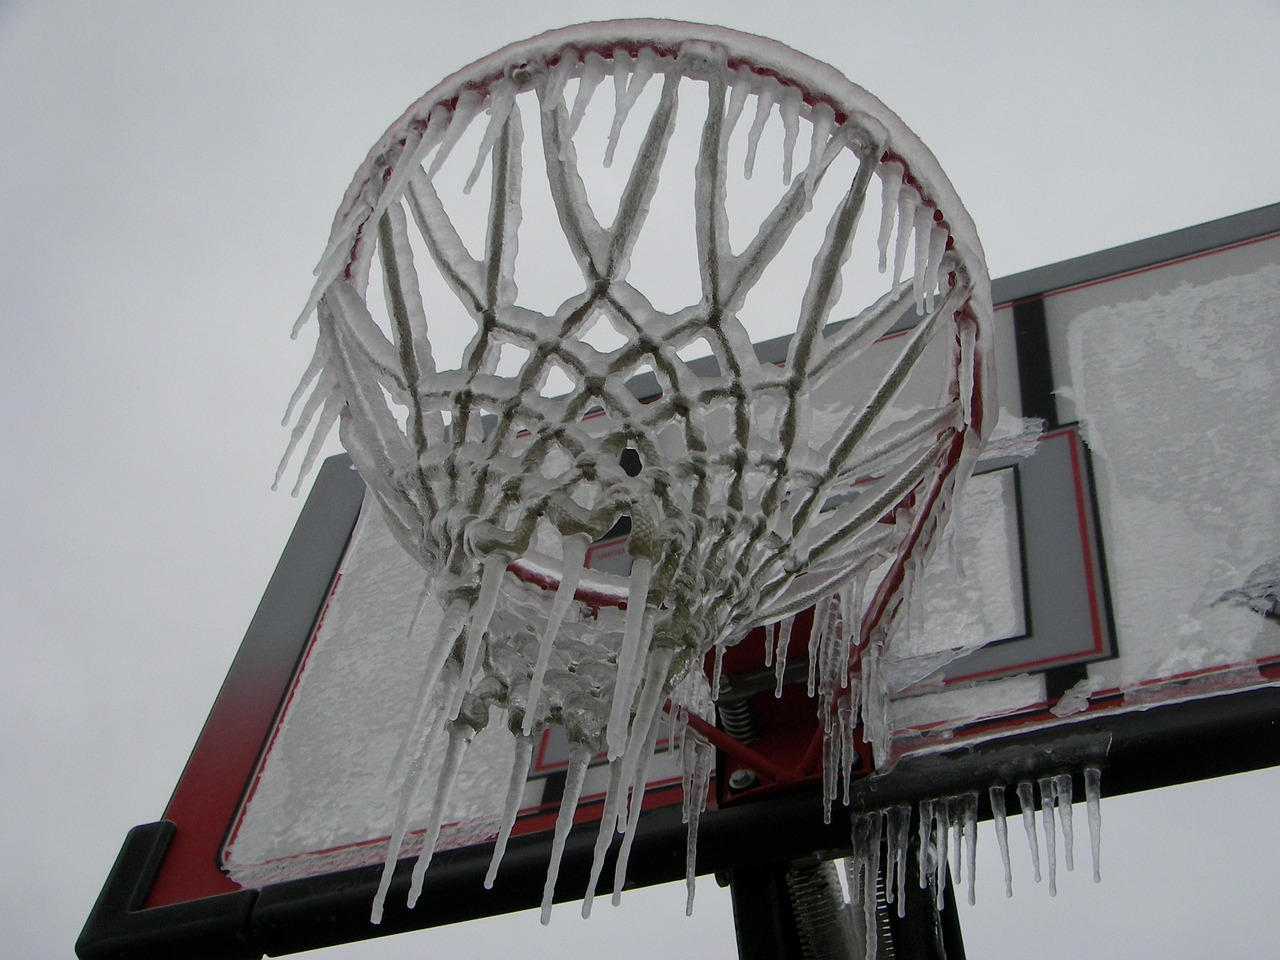 basketball net,ice storm,season,white,cold,ice,snow,winter,frost,snowy,frozen,outdoor,weather,snowfall,cool,frosty,snowstorm,blizzard,snow-storm,free pictures, free photos, free images, royalty free, free illustrations, public domain